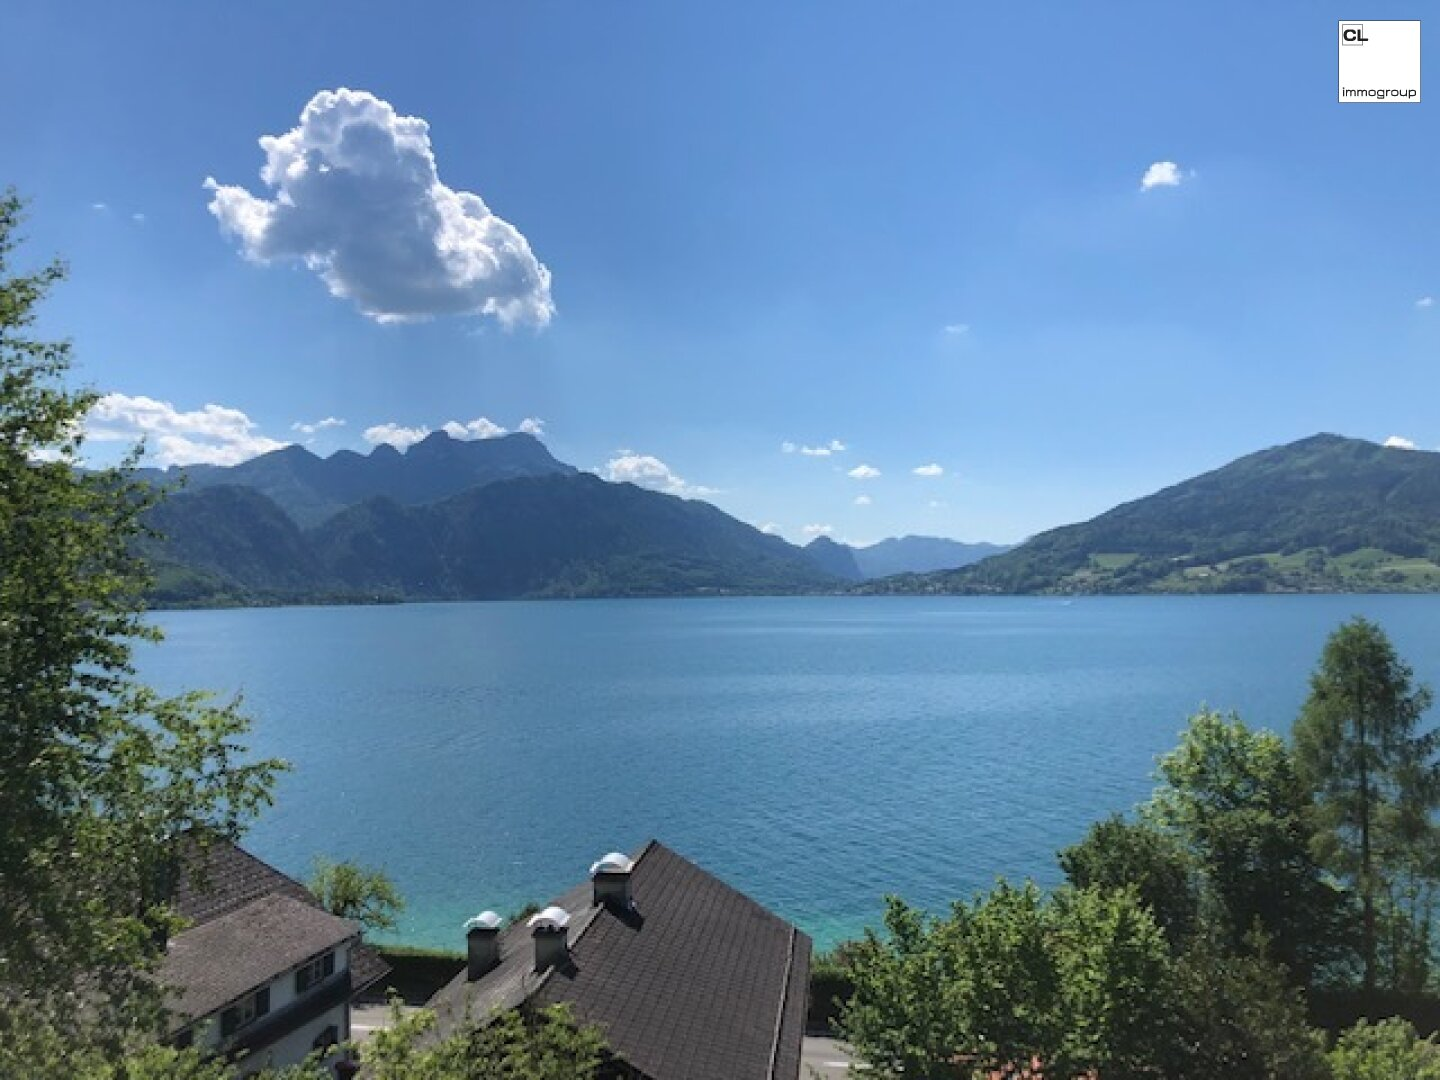 Tolle Liegenschaft am Attersee - mit Bootshaus und großem Badeplatz am sonnigen Ostufer des Attersees - Marcus W. F. Oberrauch Immobilien - CL-Immogroup.at